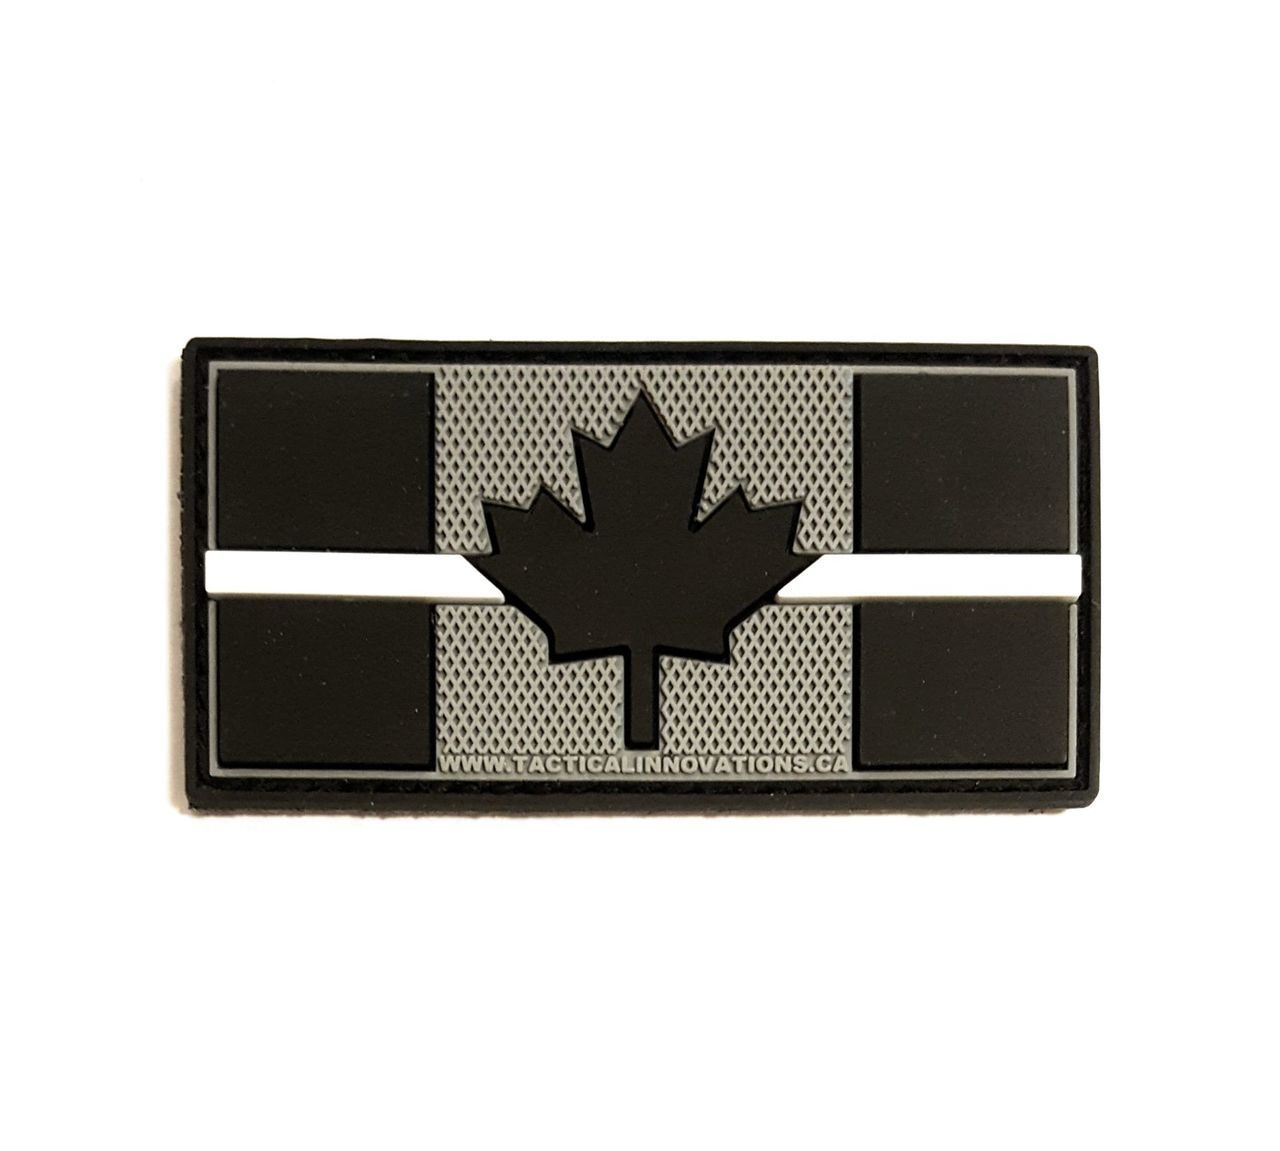 Tactical Innovations Canada PVC Patch - Canadian Thin White Line 1.5x3